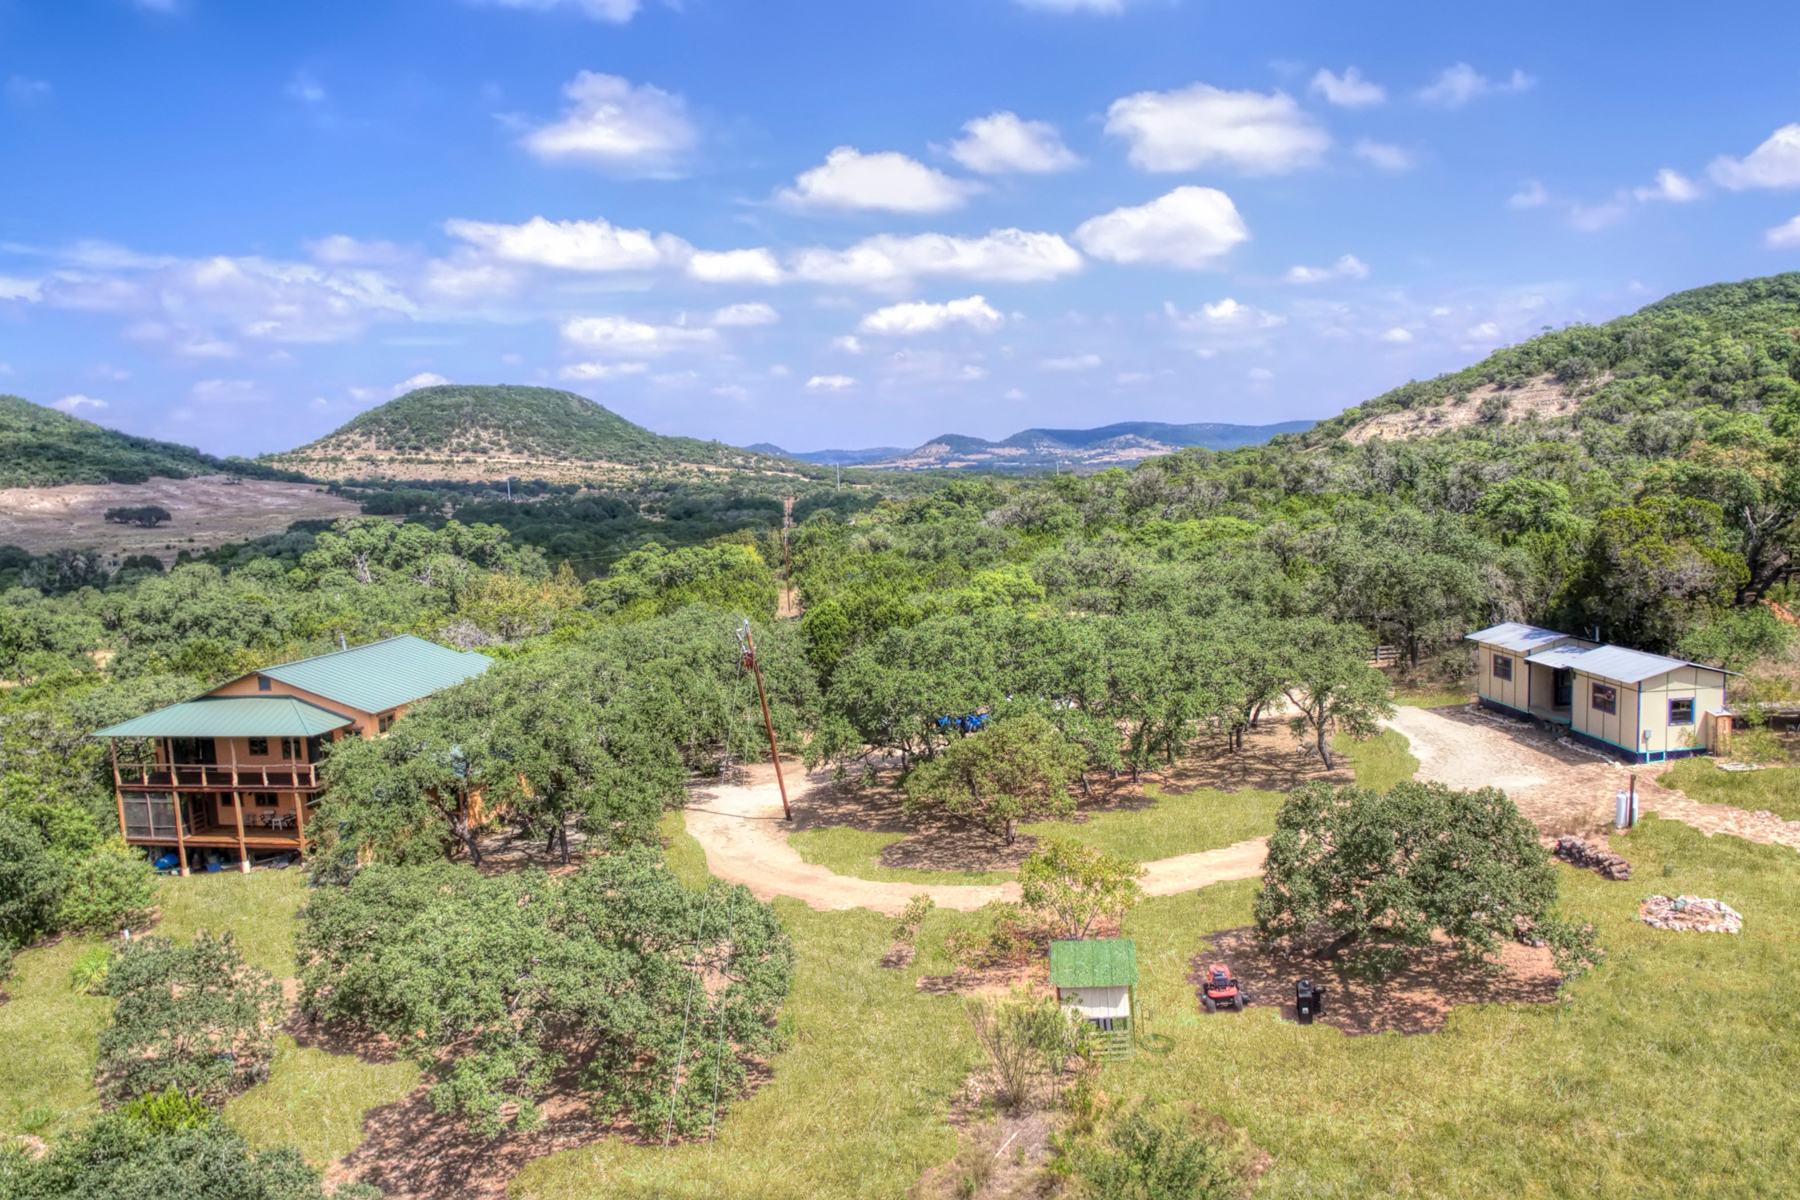 Single Family Home for Sale at Scenic 20 Acre Retreat 474 Lost Ln Tarpley, Texas 78883 United States